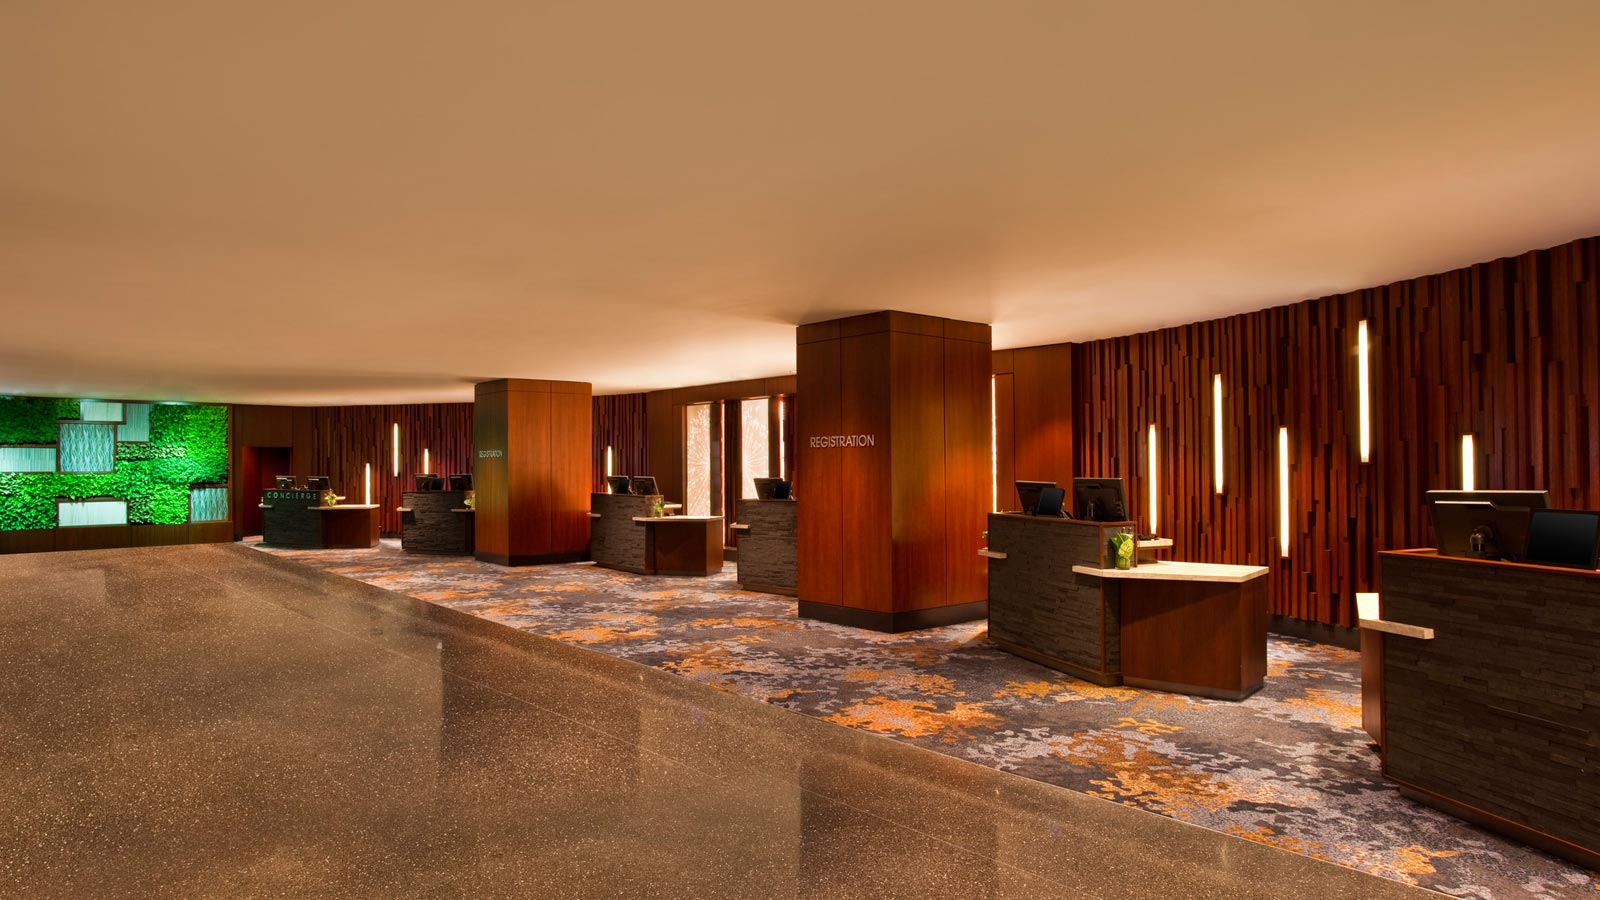 The Westin Peachtree Plaza - Hotel Features